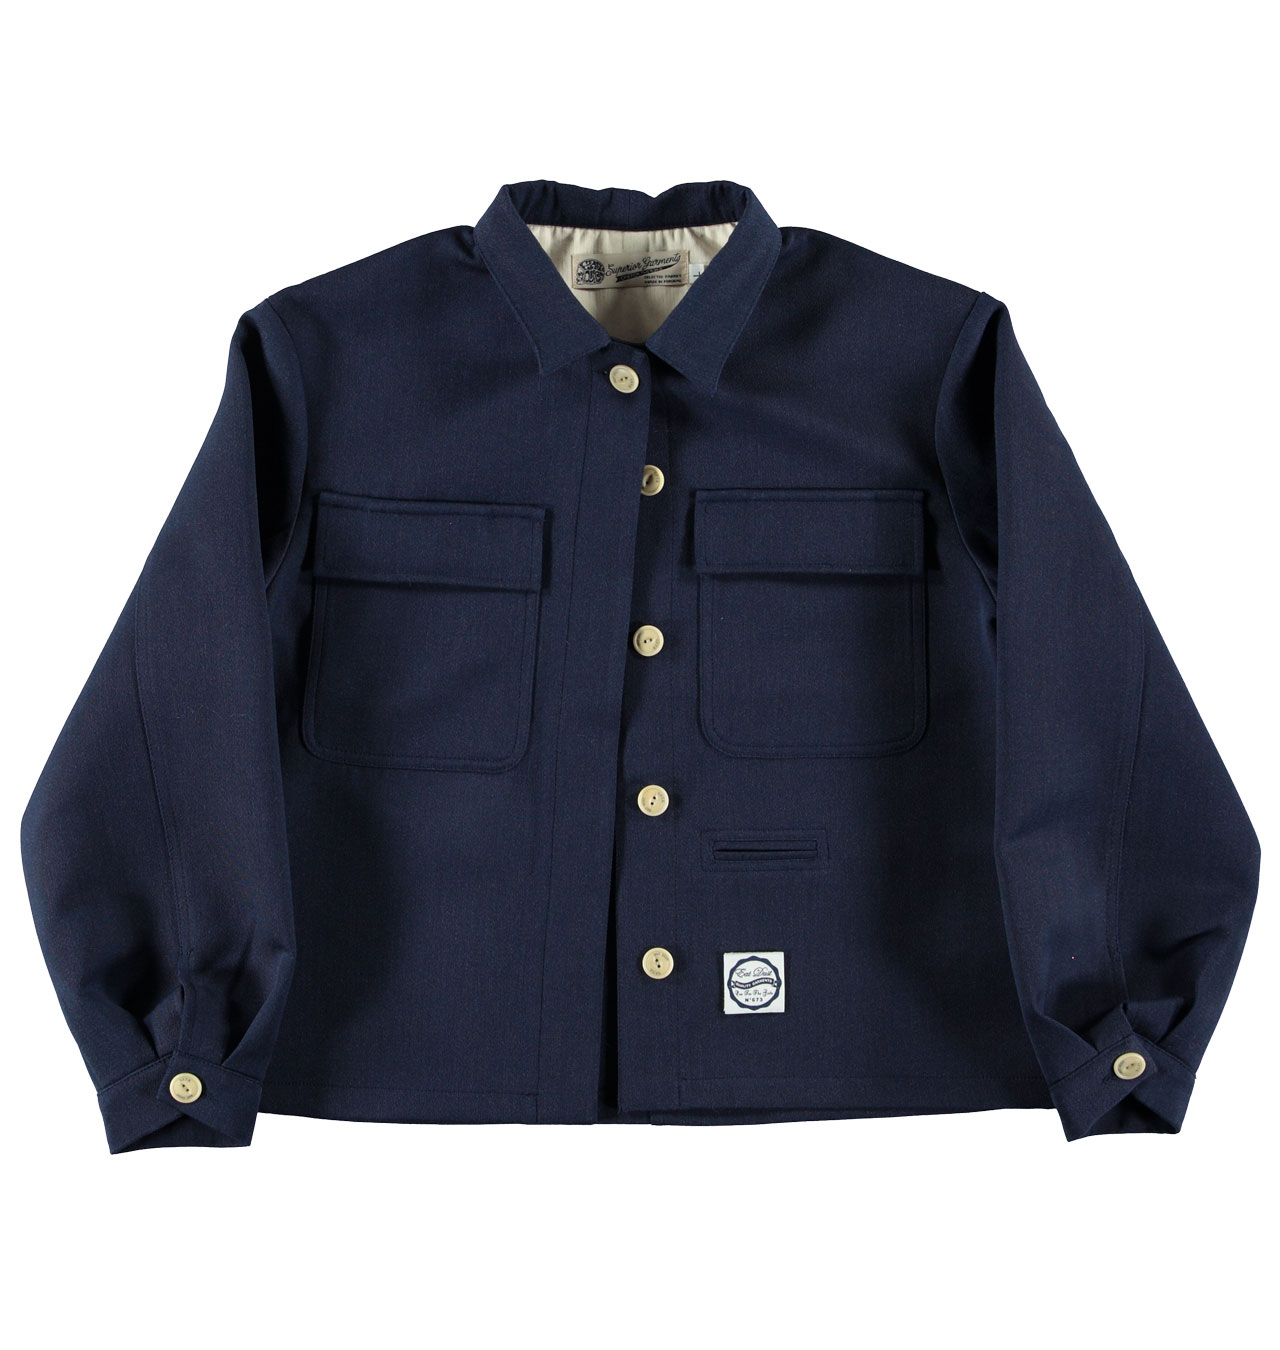 new arrival latest selection of 2019 men/man Girls Of Dust - Womens Worker Wool Jacket - Navy